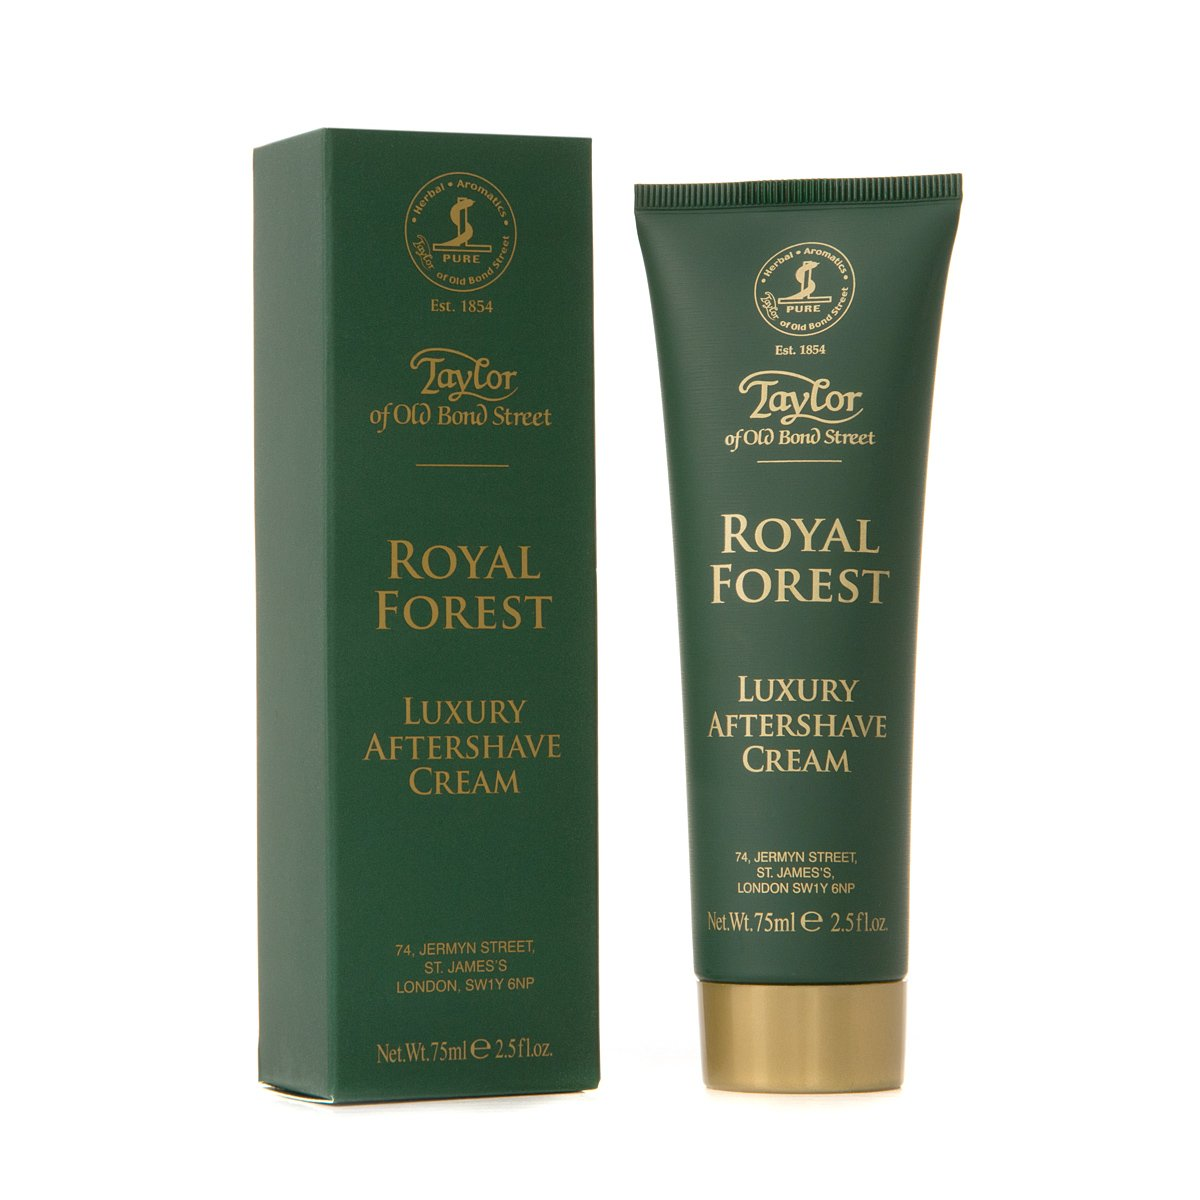 Royal Forest Aftershave Cream 75ml